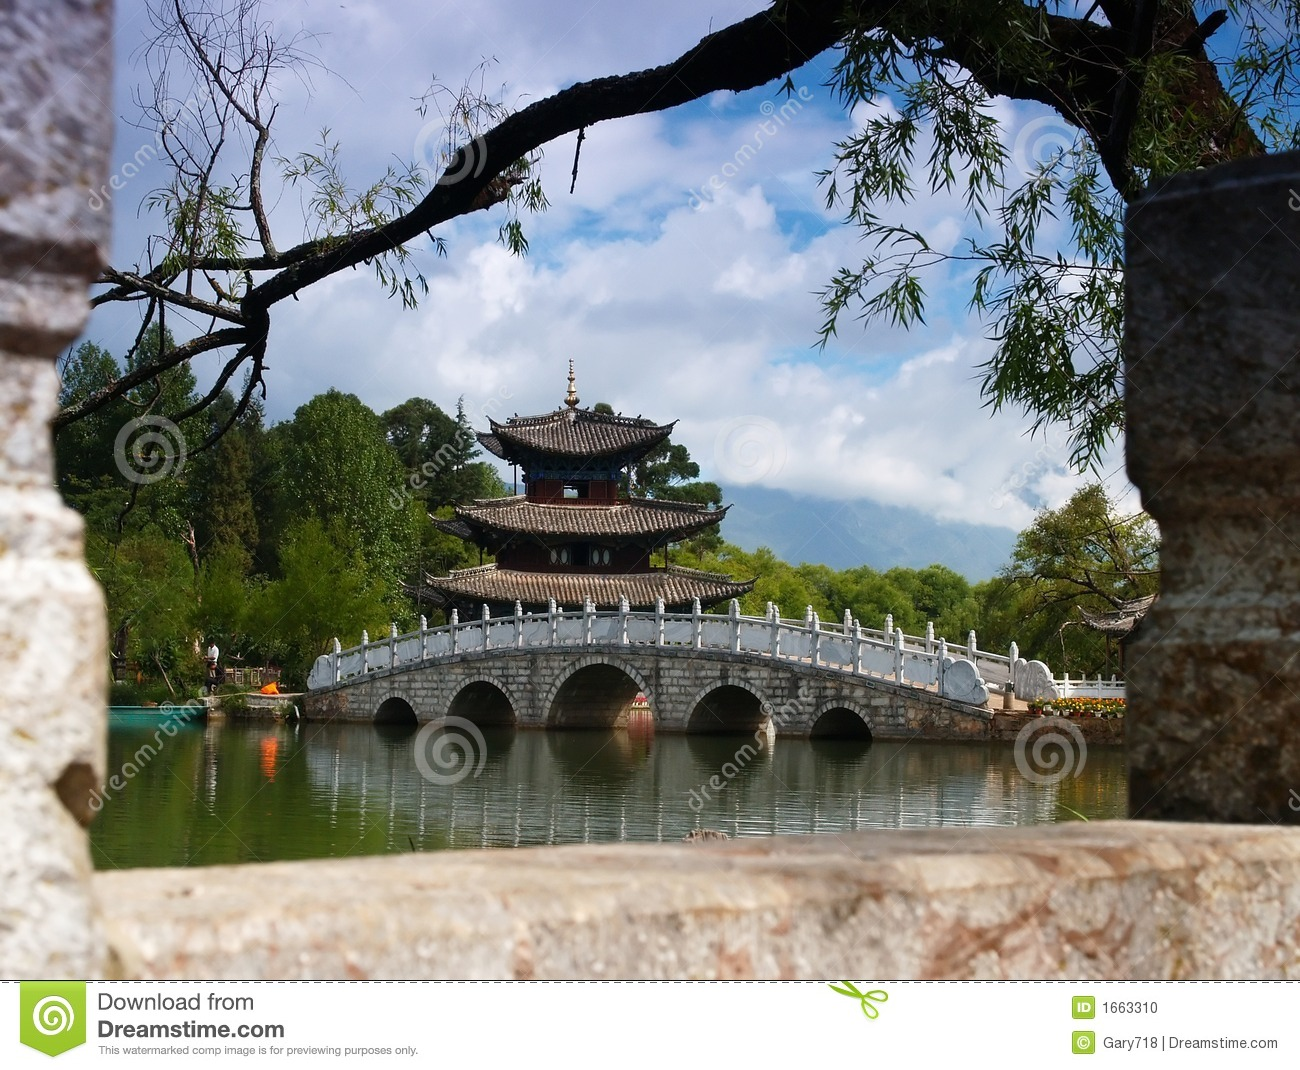 A Scenery Park In Lijiang China #4 Royalty Free Stock Image.